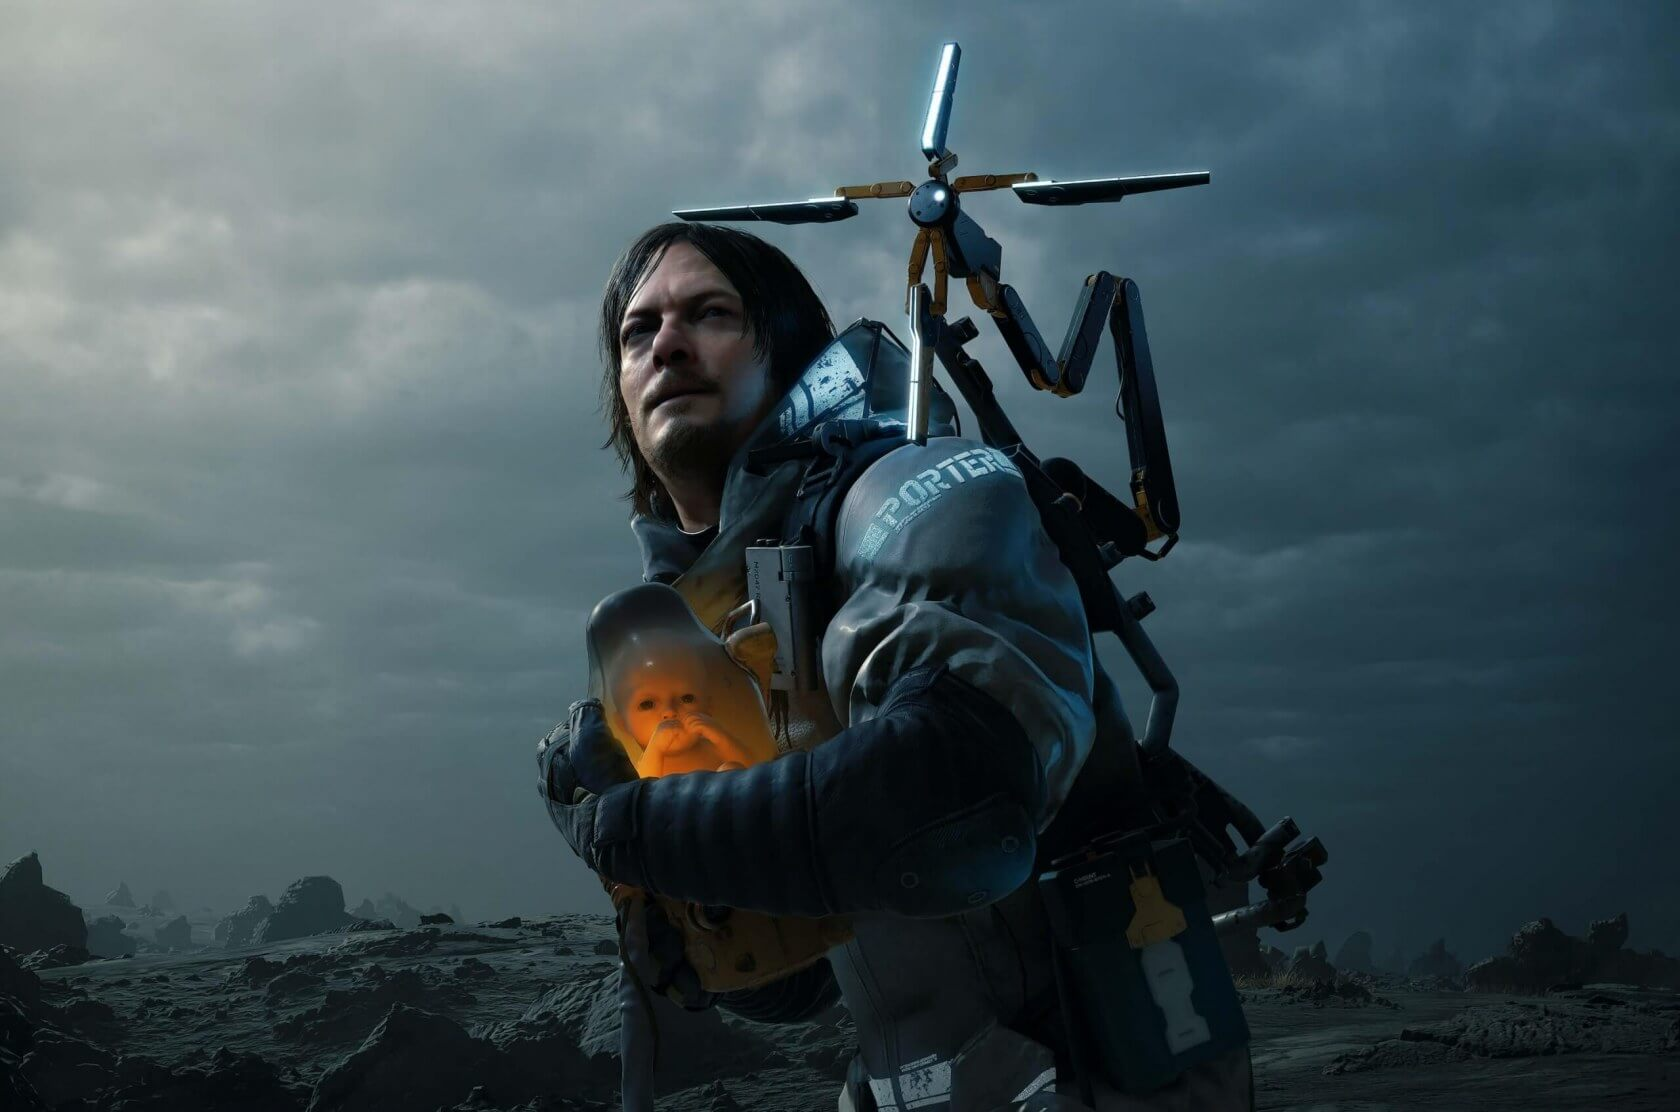 Death Stranding's modest PC system requirements have hit the web